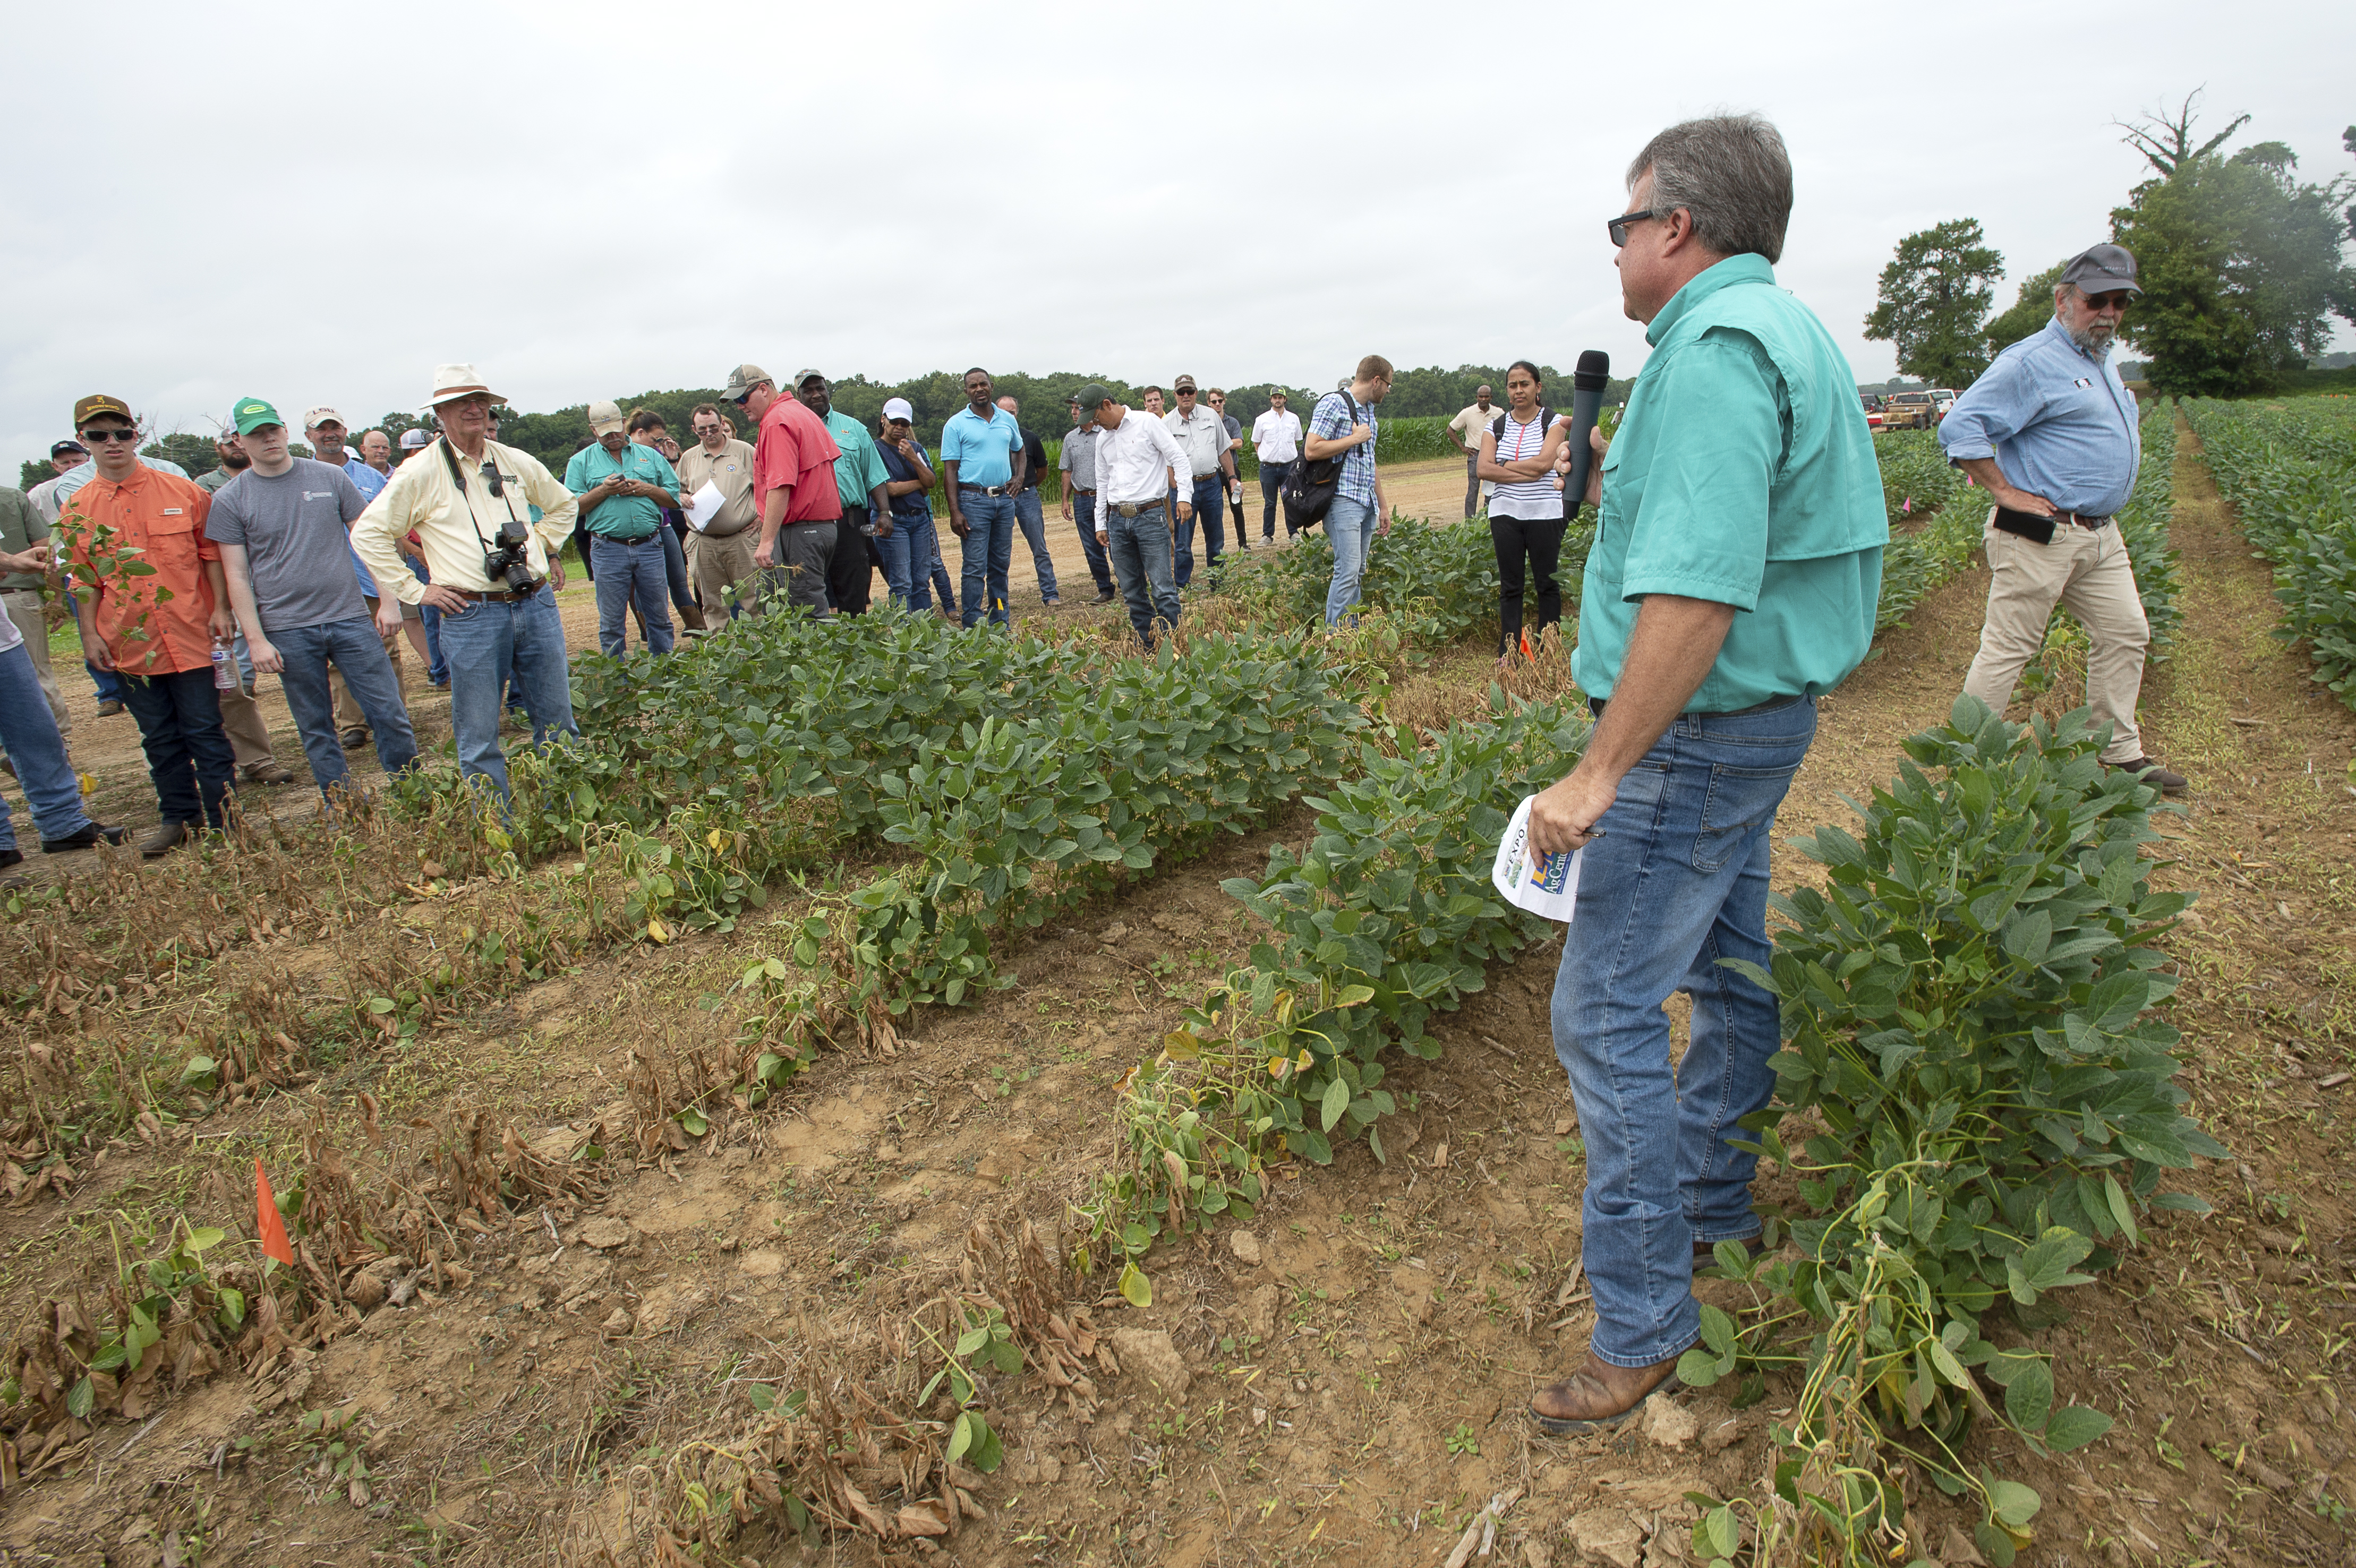 AgCenter field day expo offers new forum for agriculture information